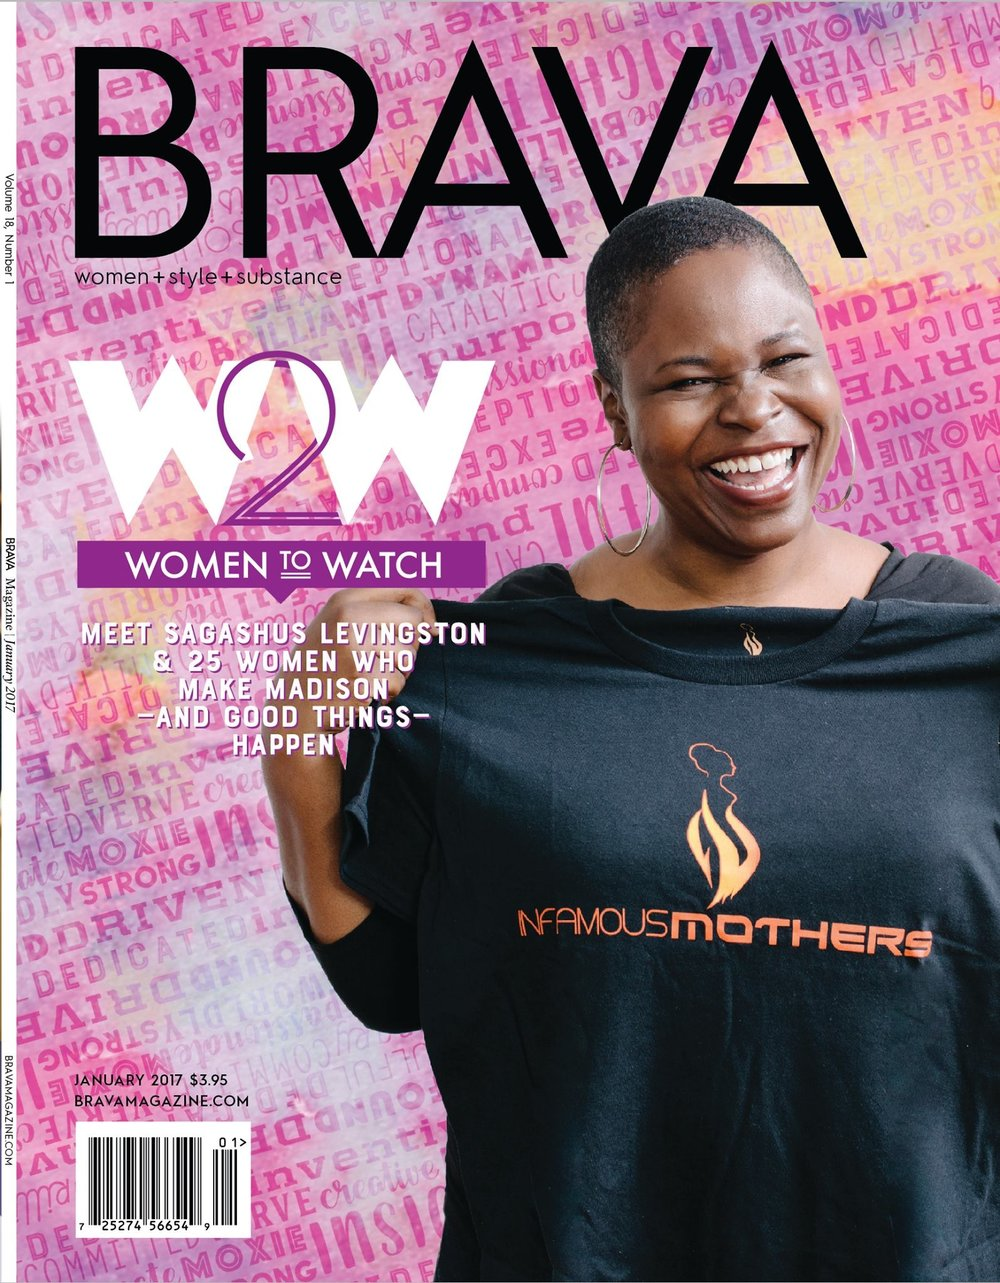 BRAVA Magazine (Cover Girl, January 2017)